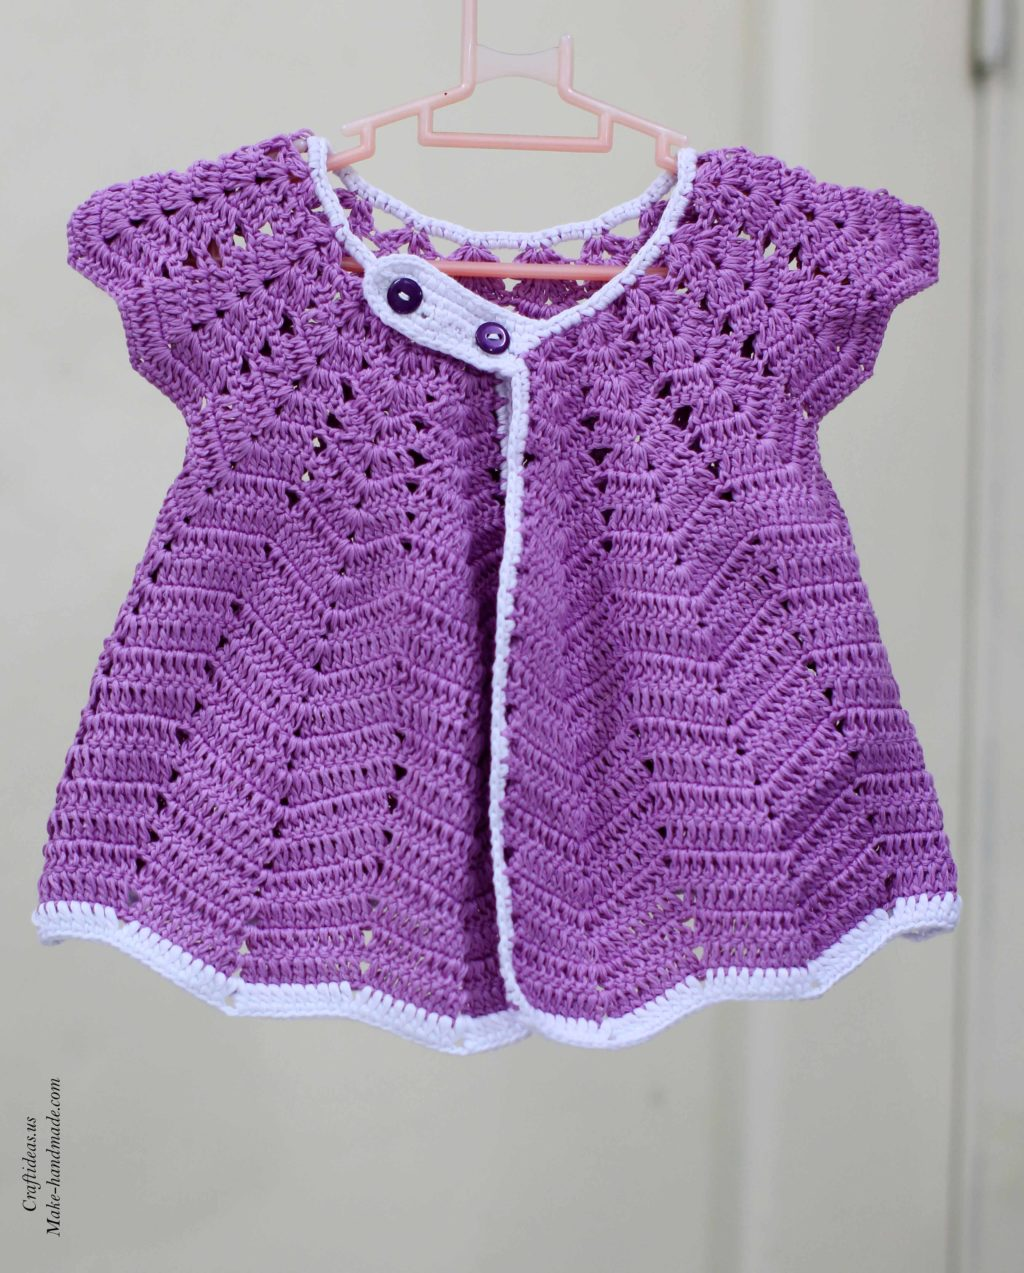 Crochet - Craft Ideas